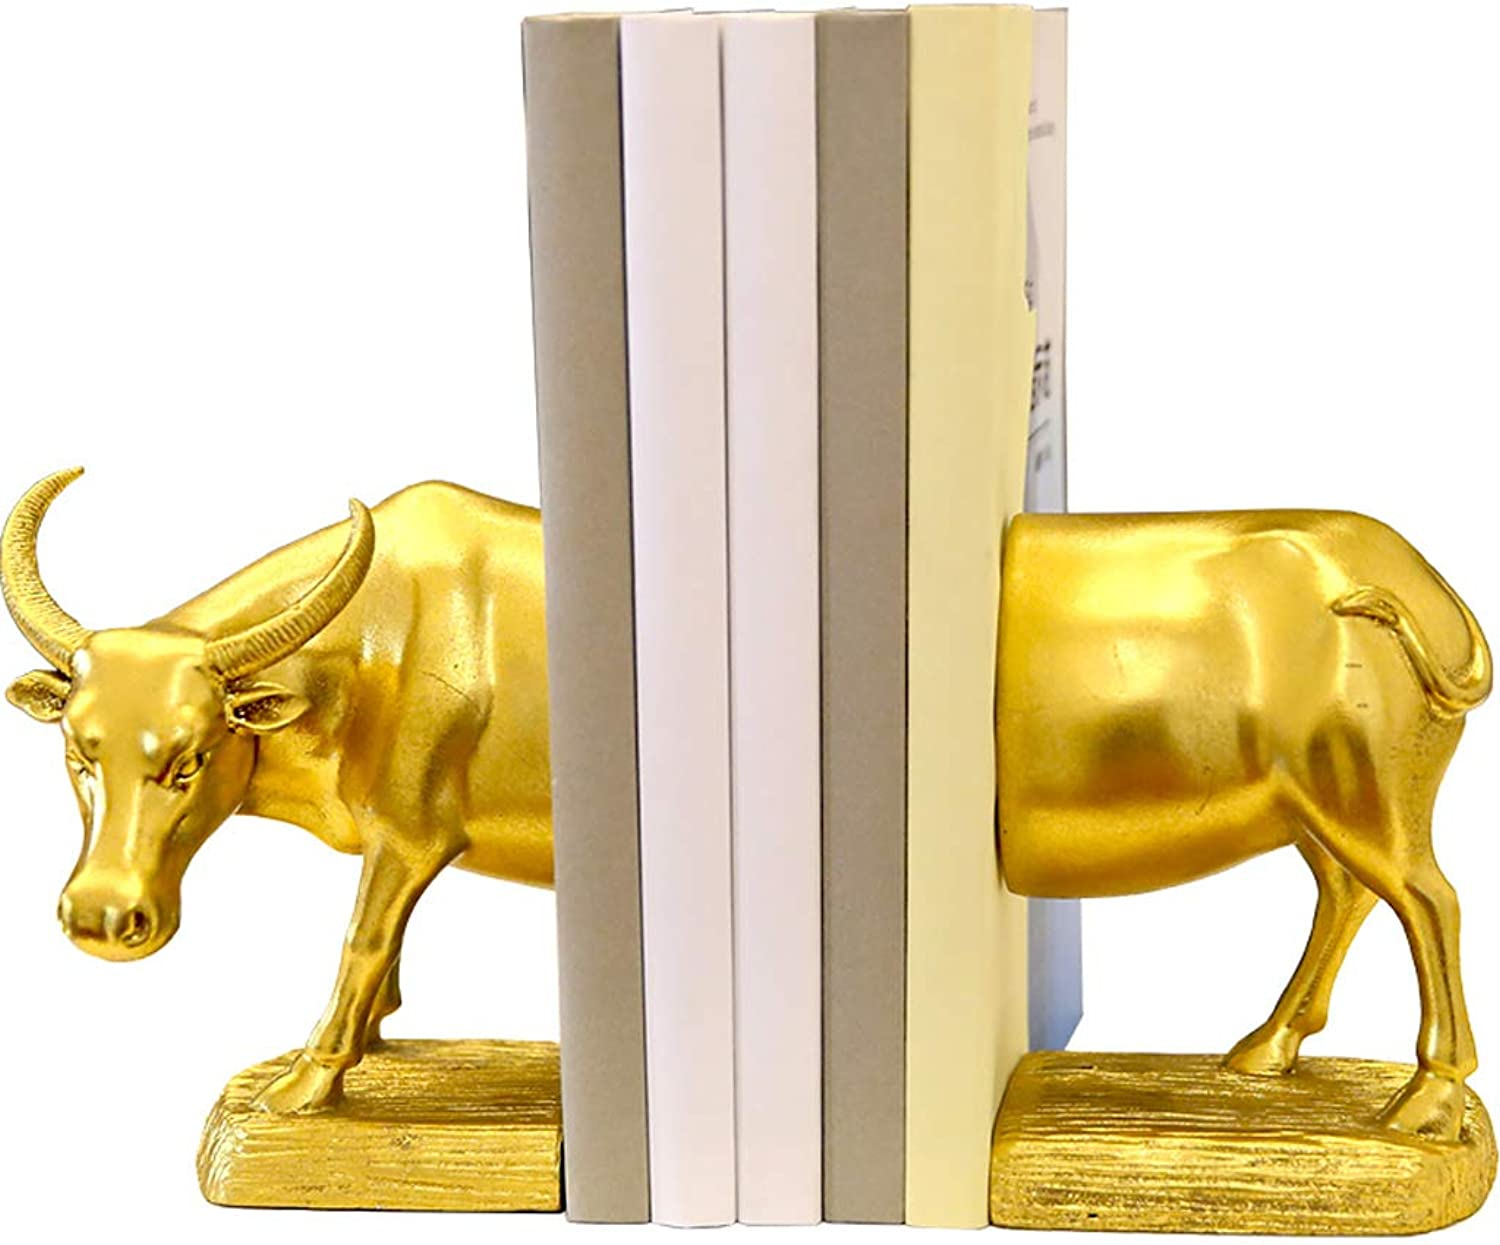 WFFXLL European American Creative Book Block Home Cow Book by Book Standing Bedroom Study Office Decoration Resin Decoration 12x16cm Bookcase